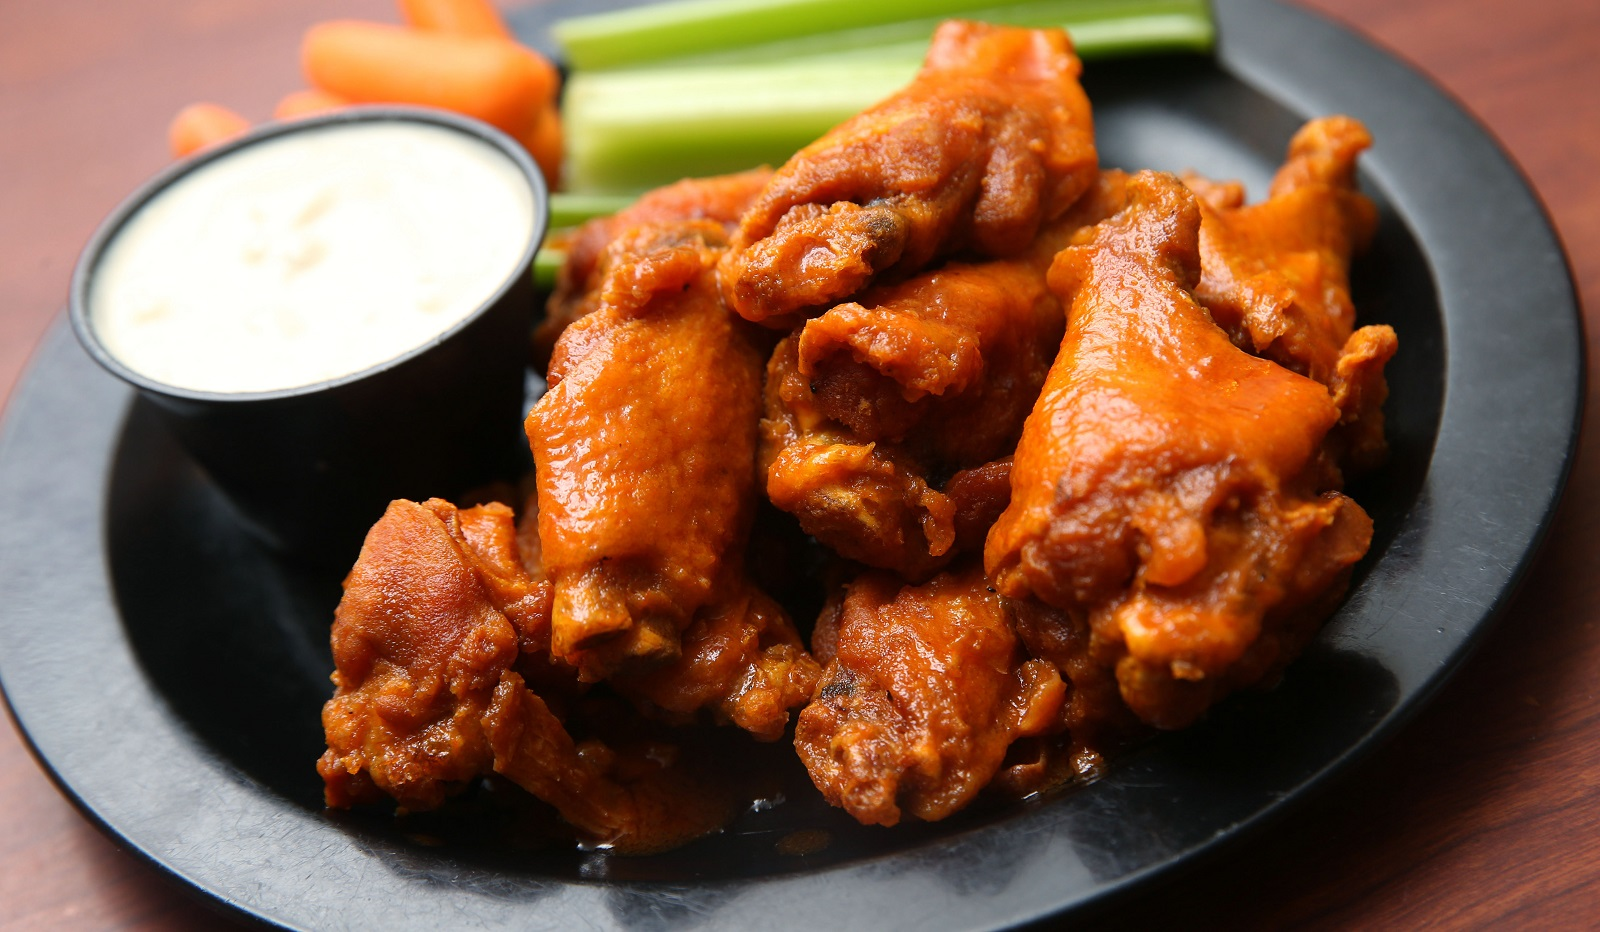 An order of wings from Duff's is a sight to behold. (Sharon Cantillon/Buffalo News)